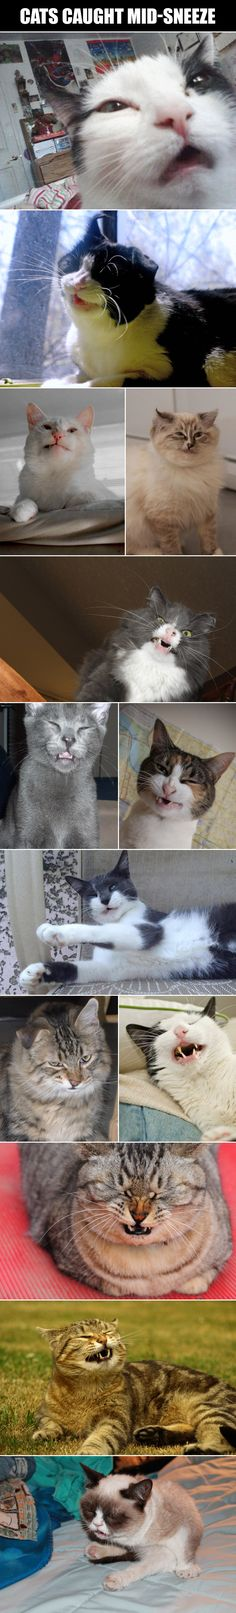 Cats caught mid-sneeze. more funny pics on facebook: https://www.facebook.com/yourfunnypics101